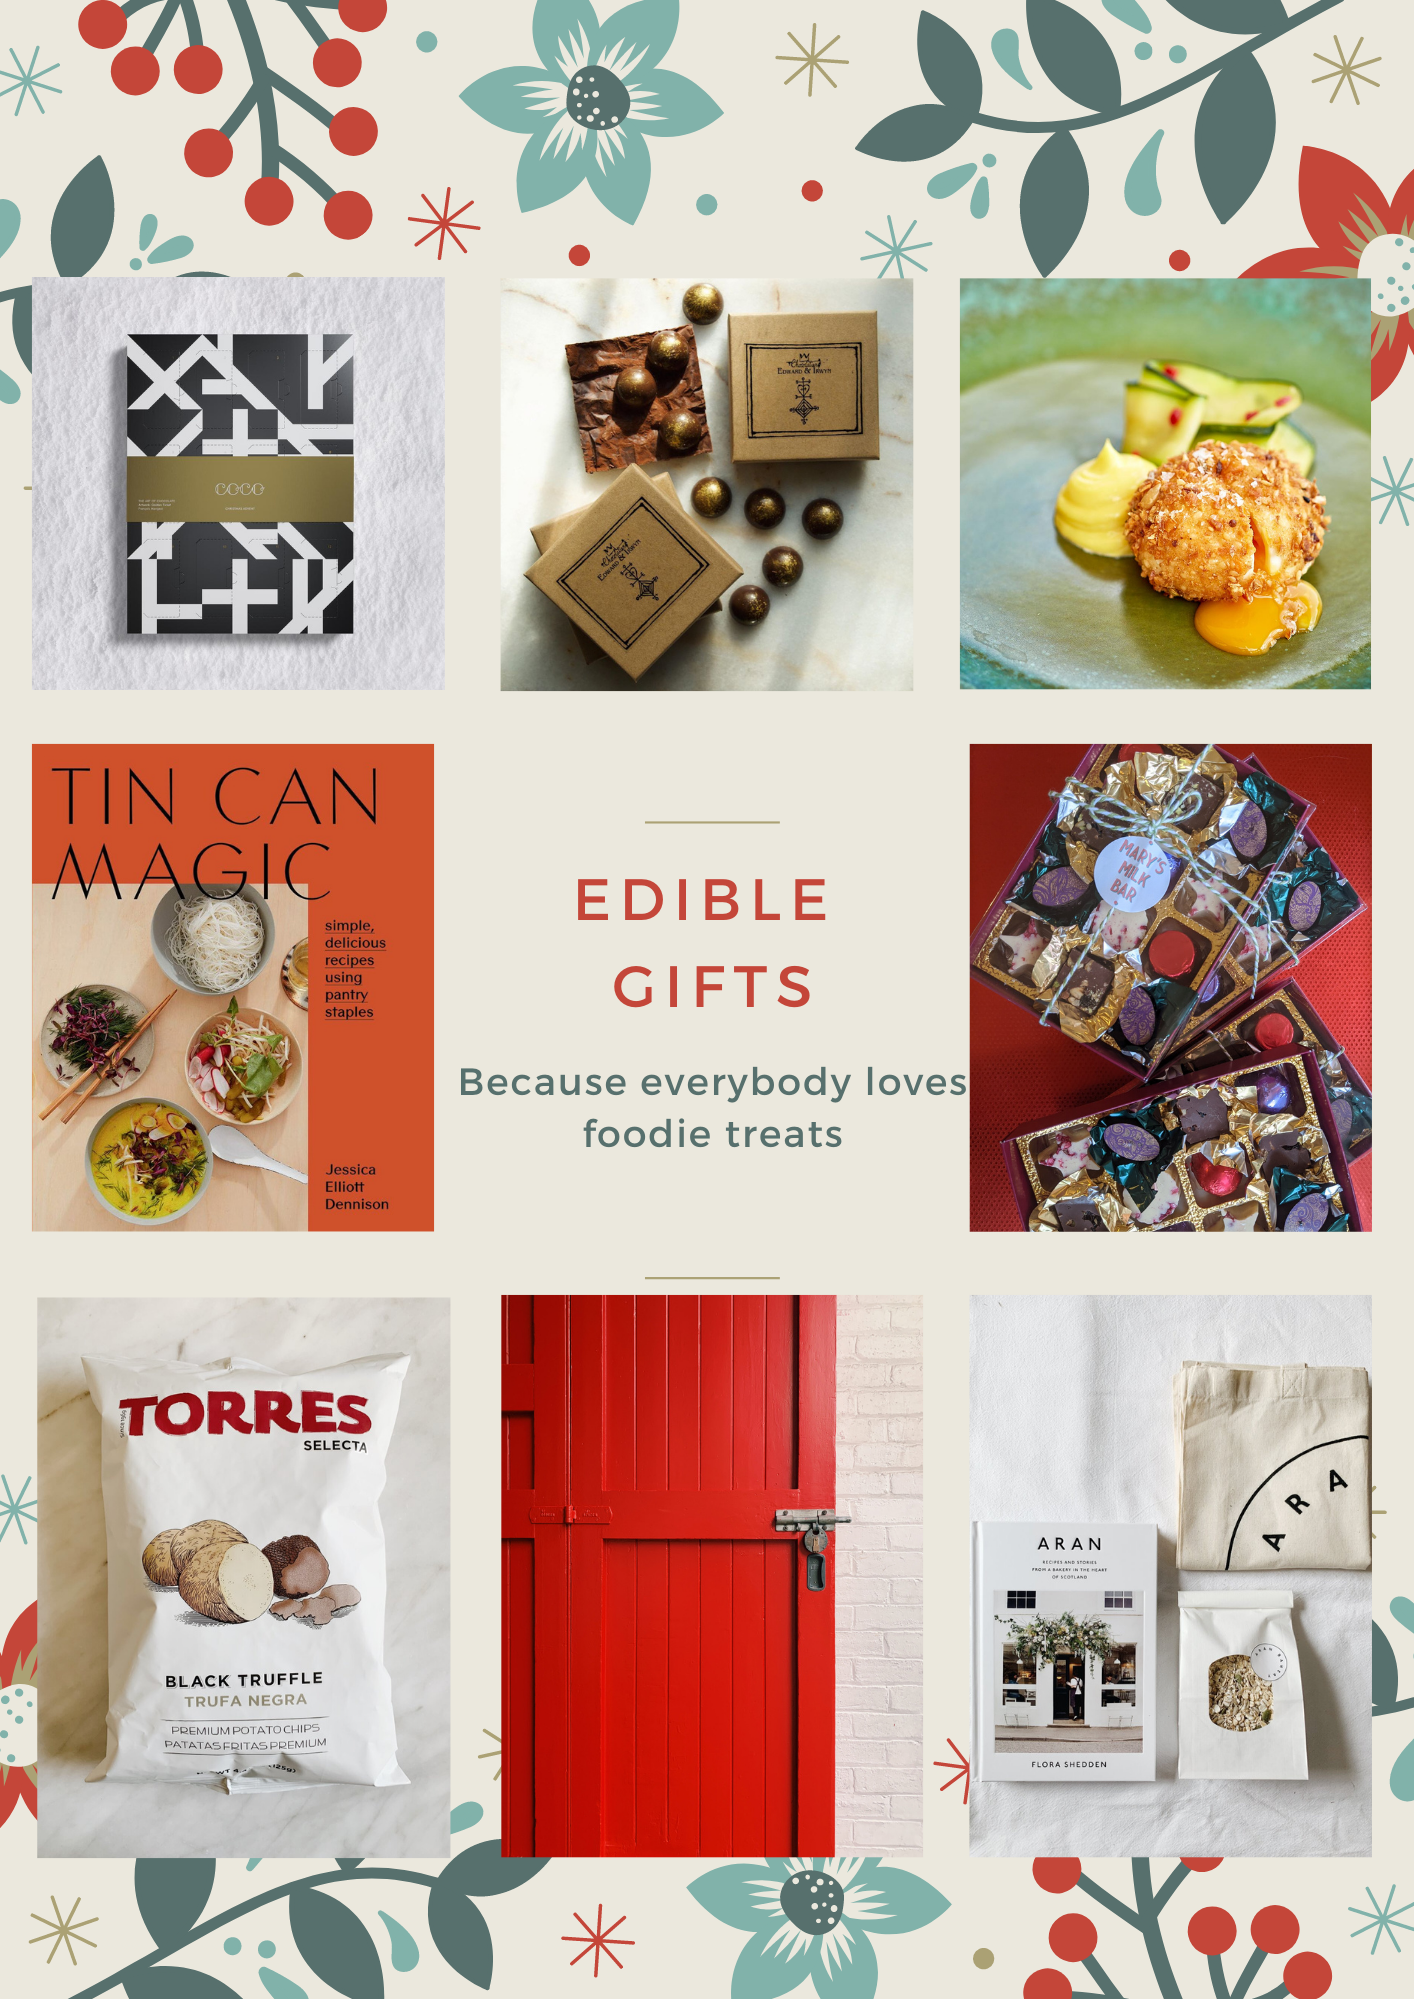 Independent Business Gifts for Foodies